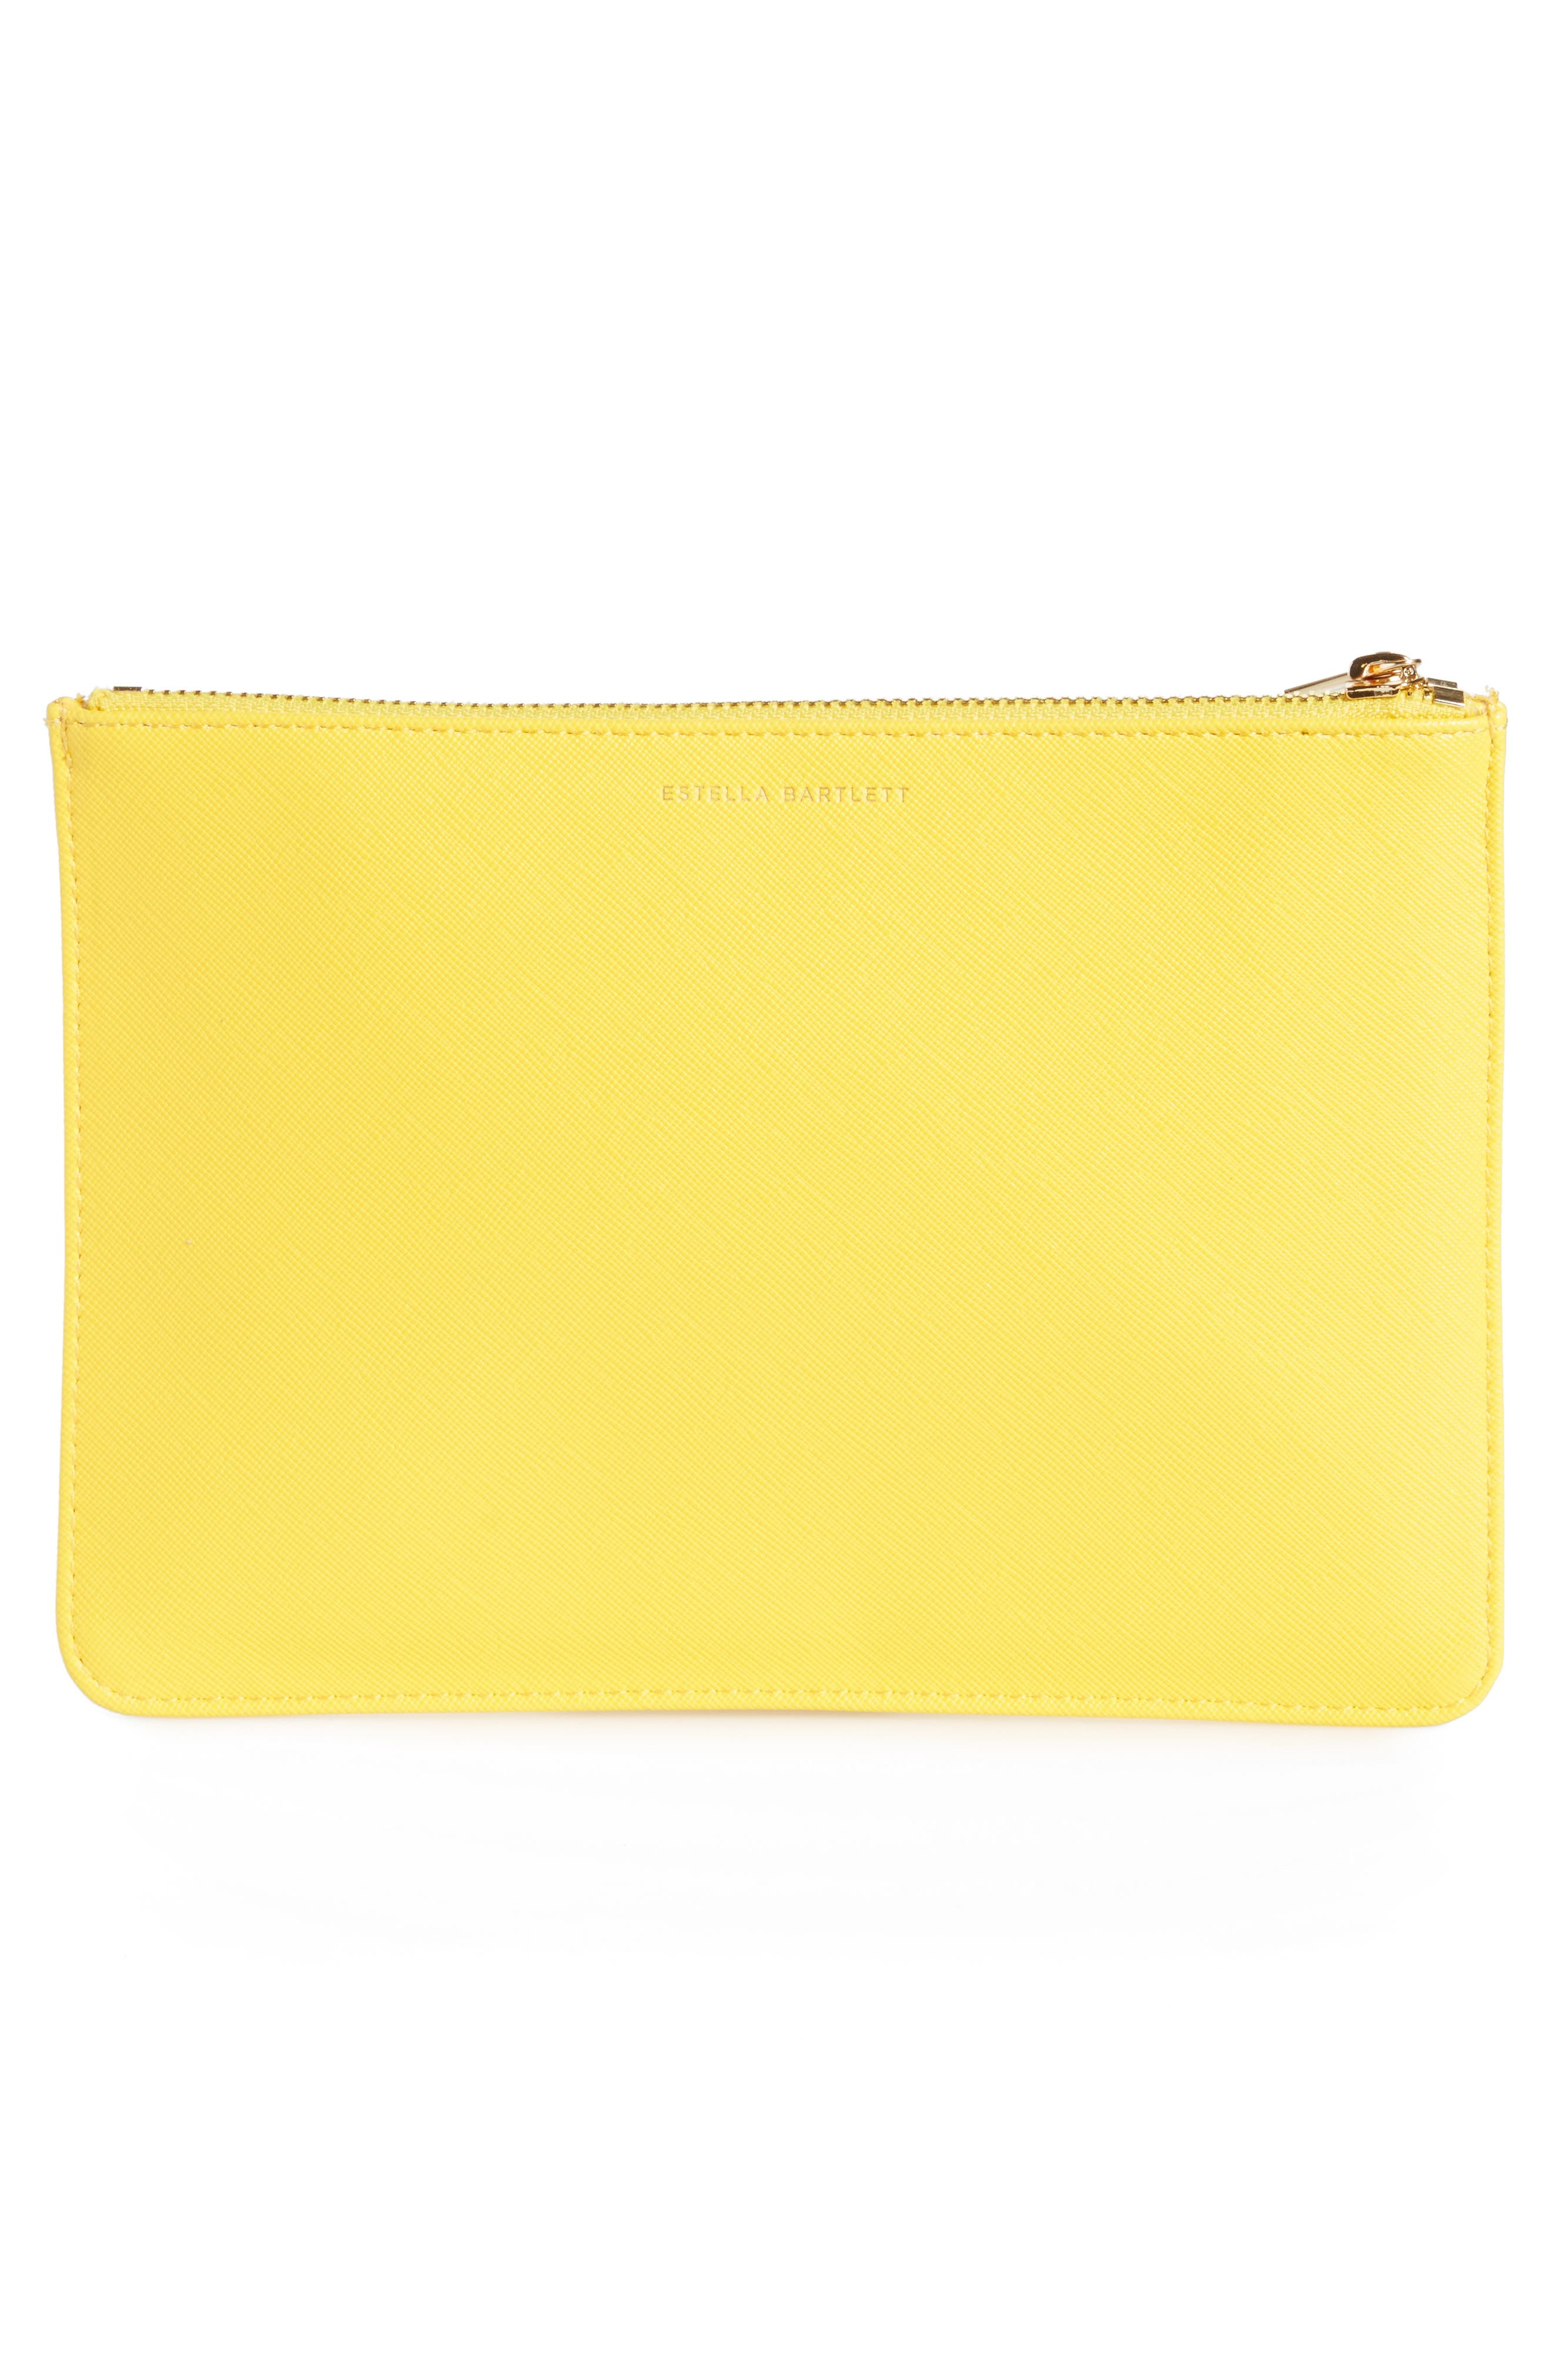 Happy Thoughts Medium Faux Leather Pouch,                             Alternate thumbnail 3, color,                             700